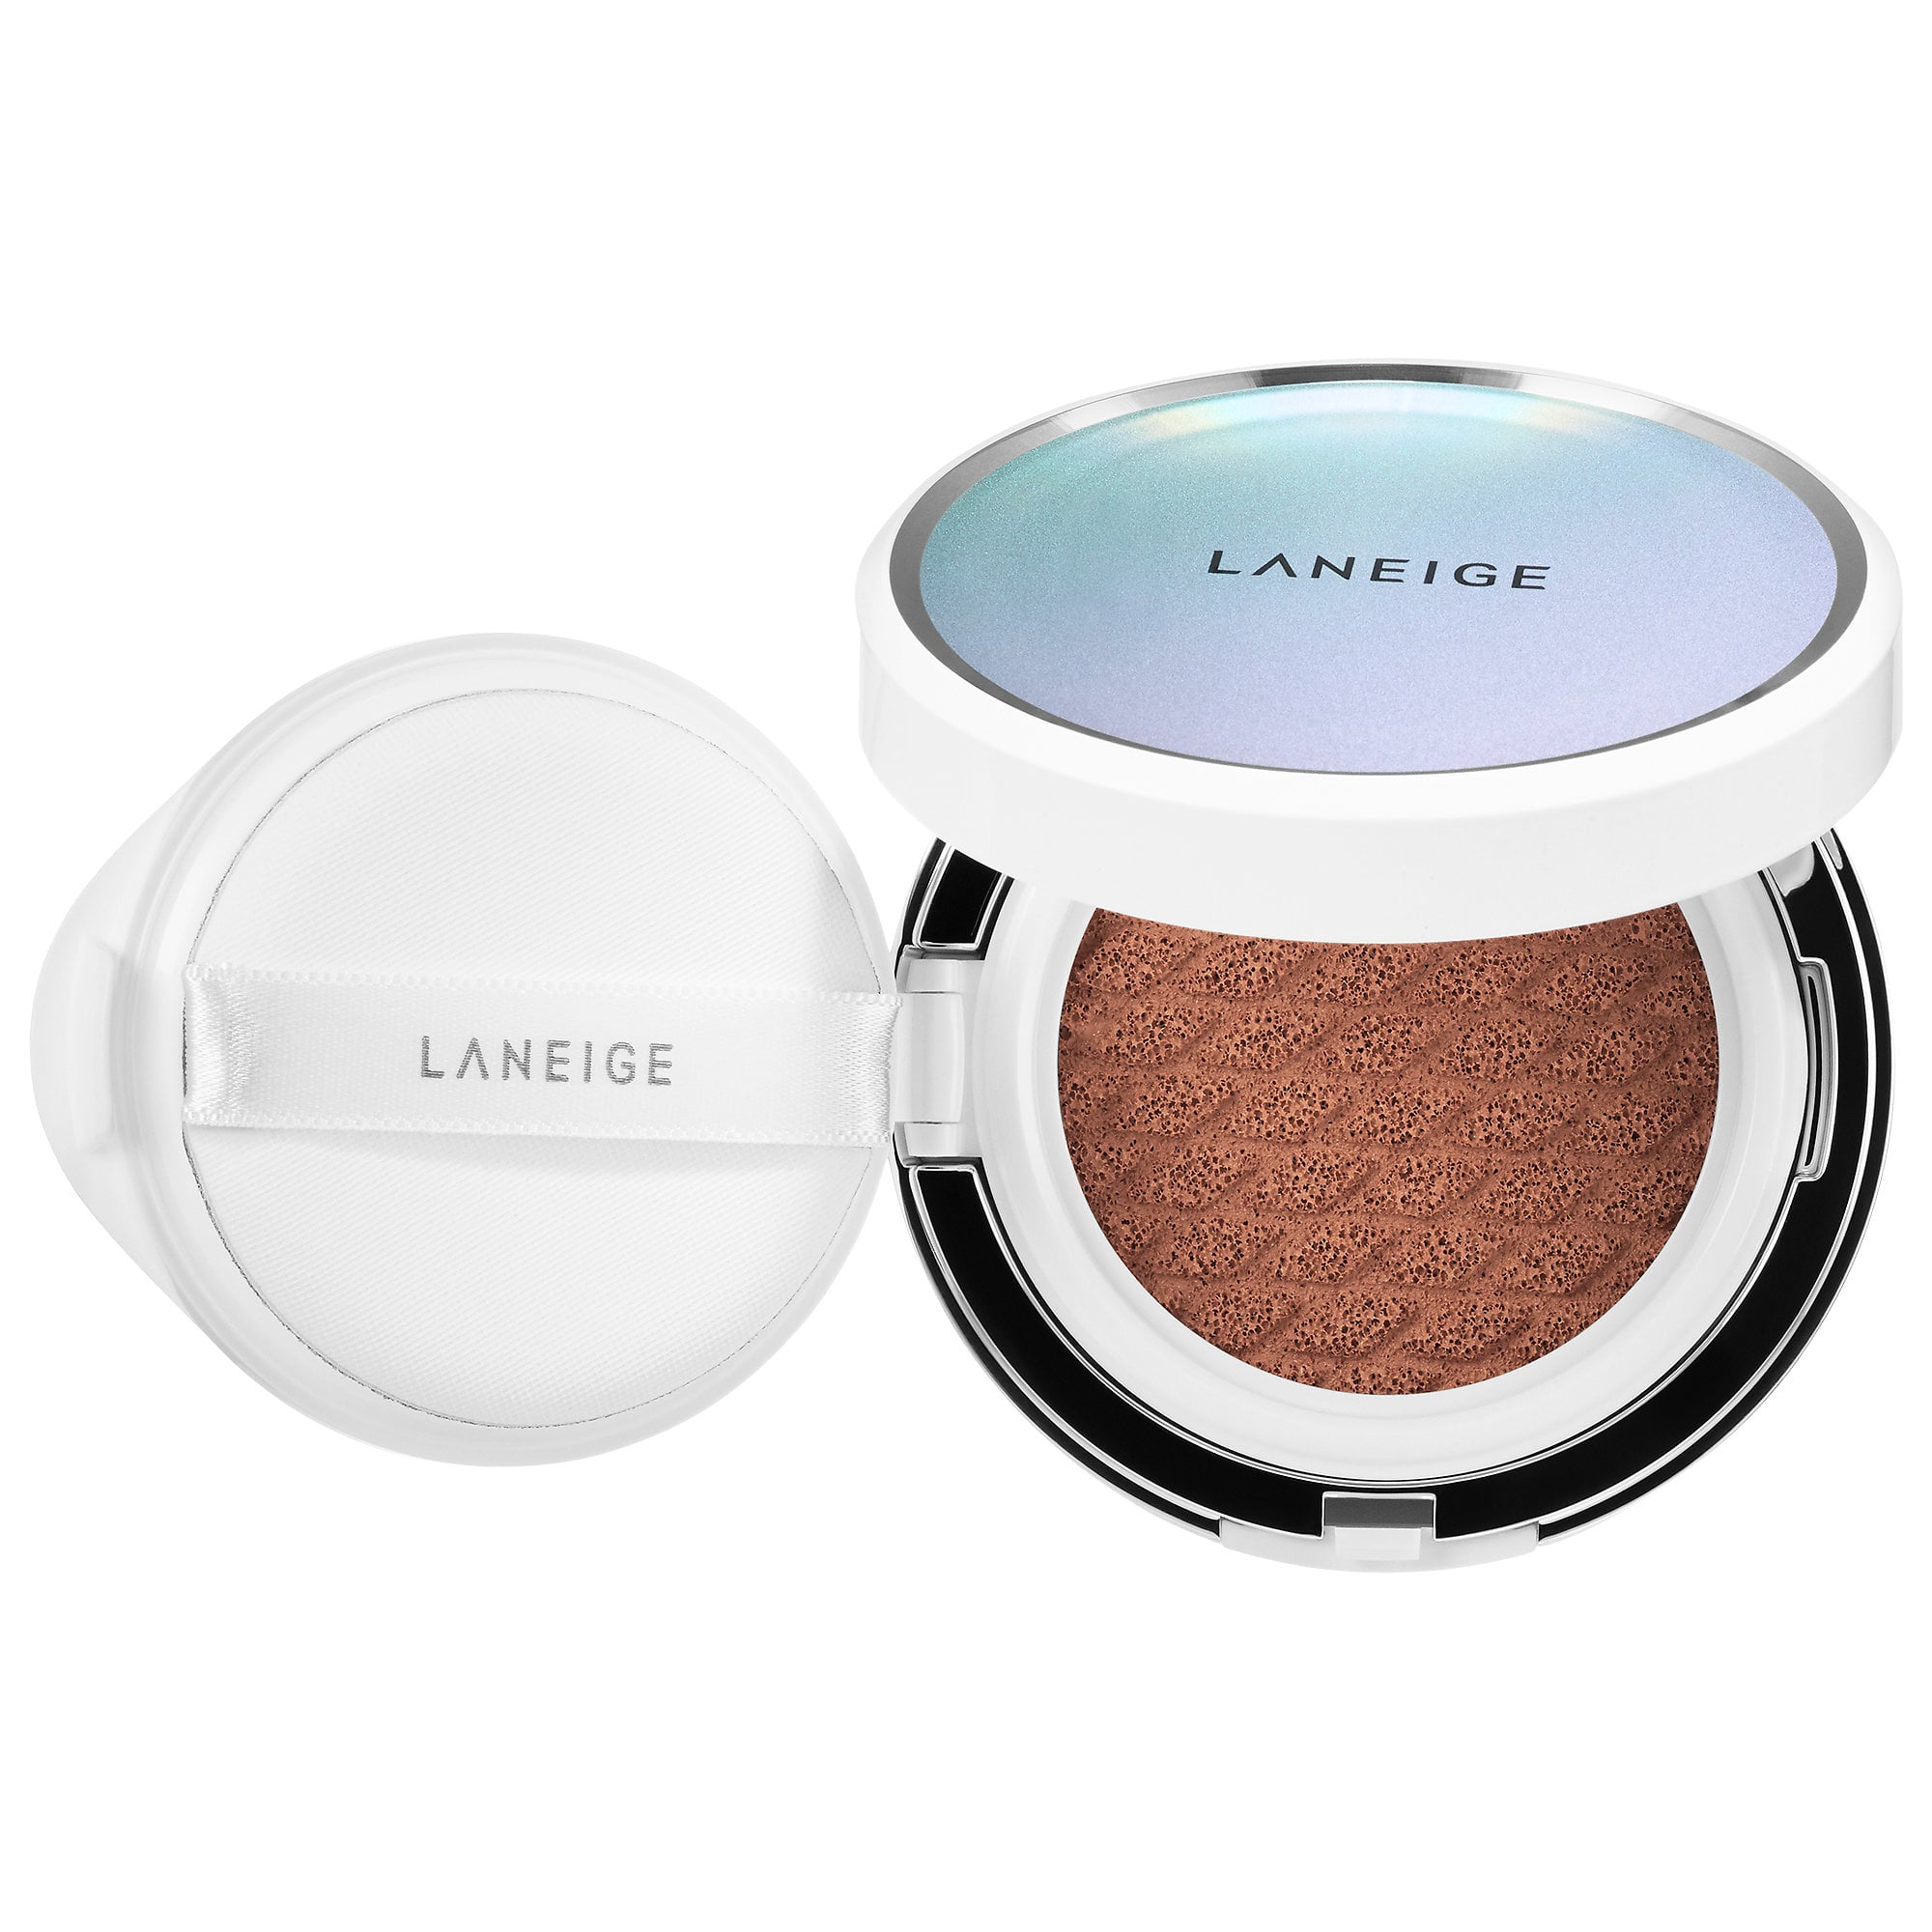 Bb cushion hydra radiance spf 50 from laneige 0